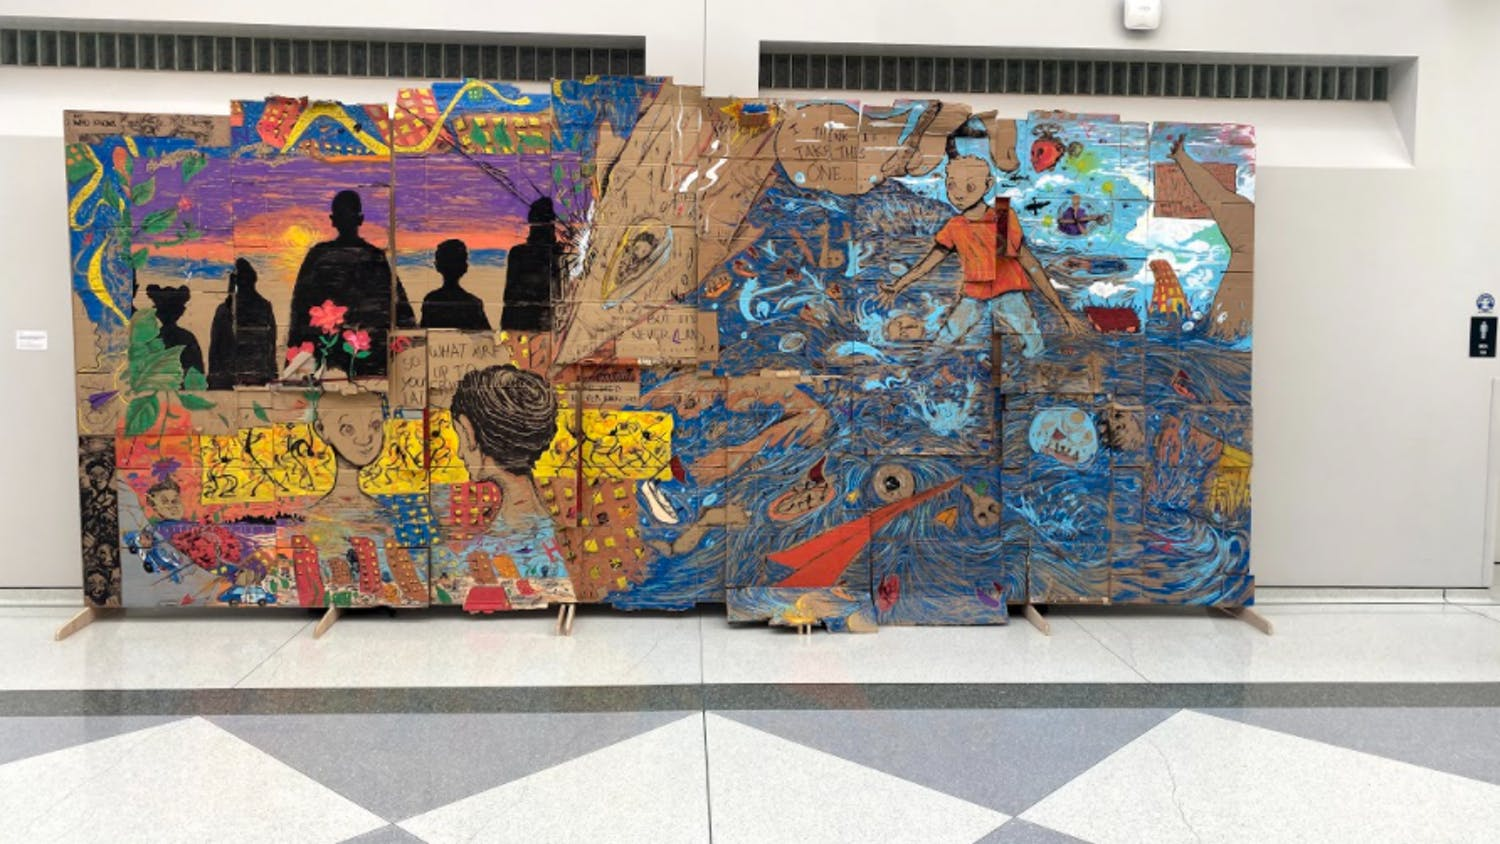 The CFA's Atrium gleams with beautiful colors from an illustrated universe of stories and happenings.